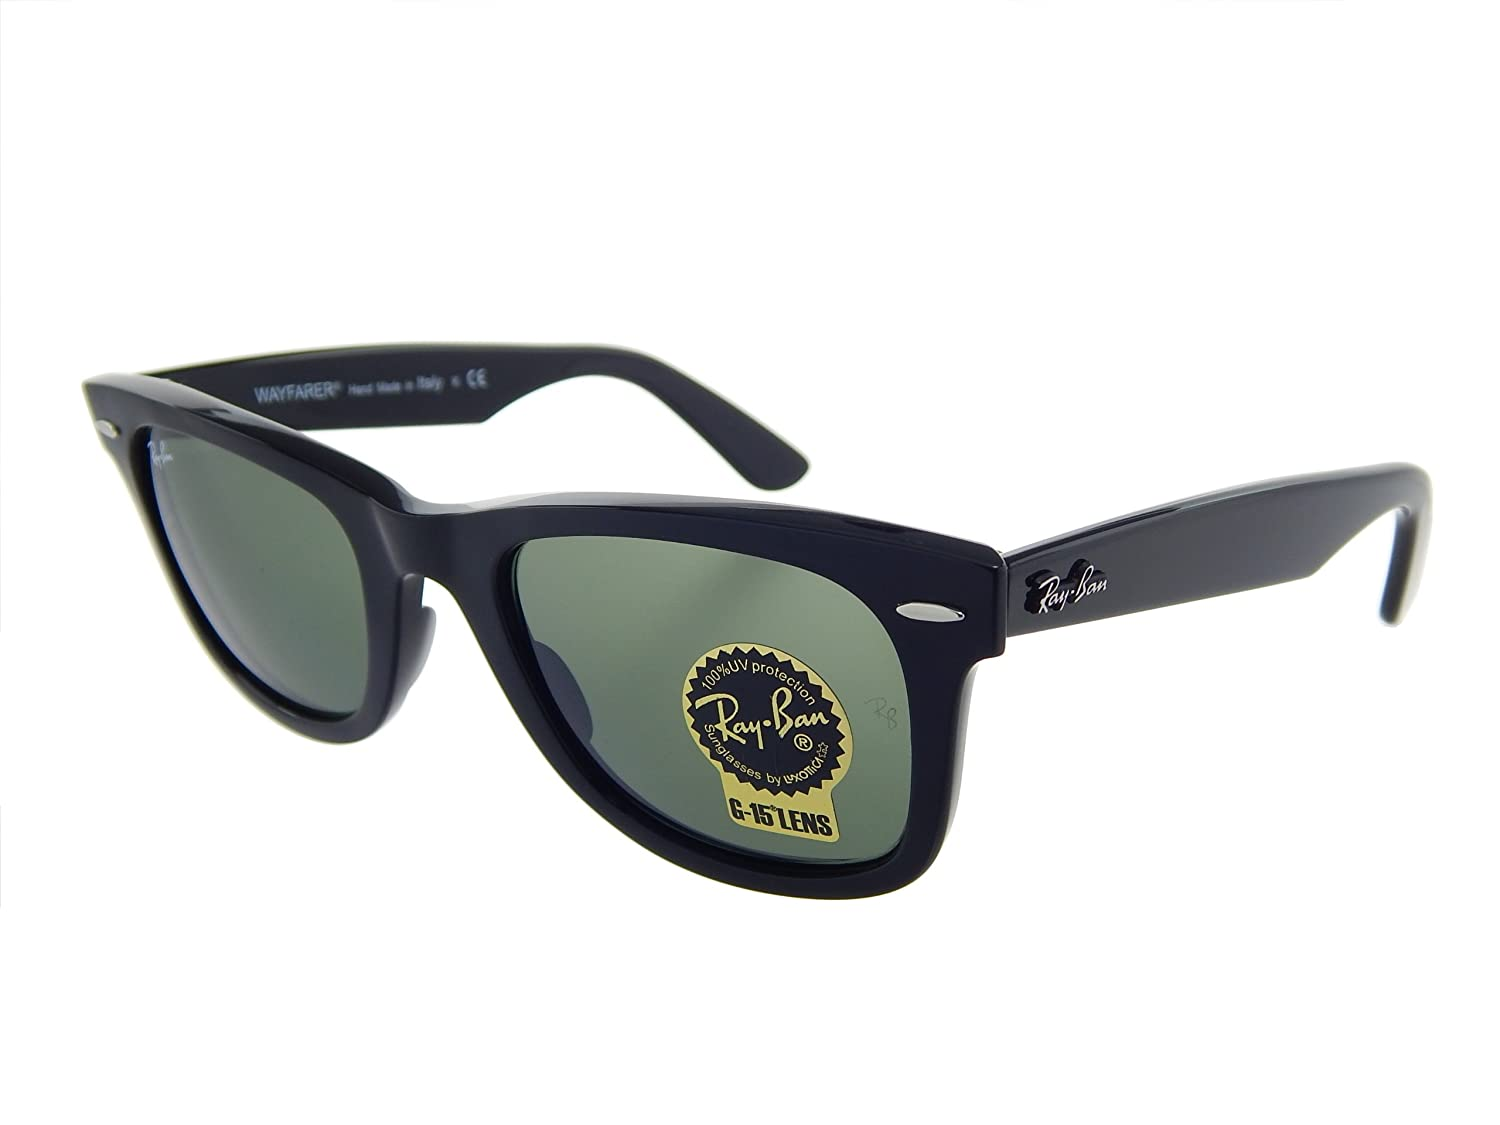 b830be8181 Amazon.com  New Ray Ban Orginal Wayfarer RB2140 901 Black Crystal Green  54mm Sunglasses  Shoes